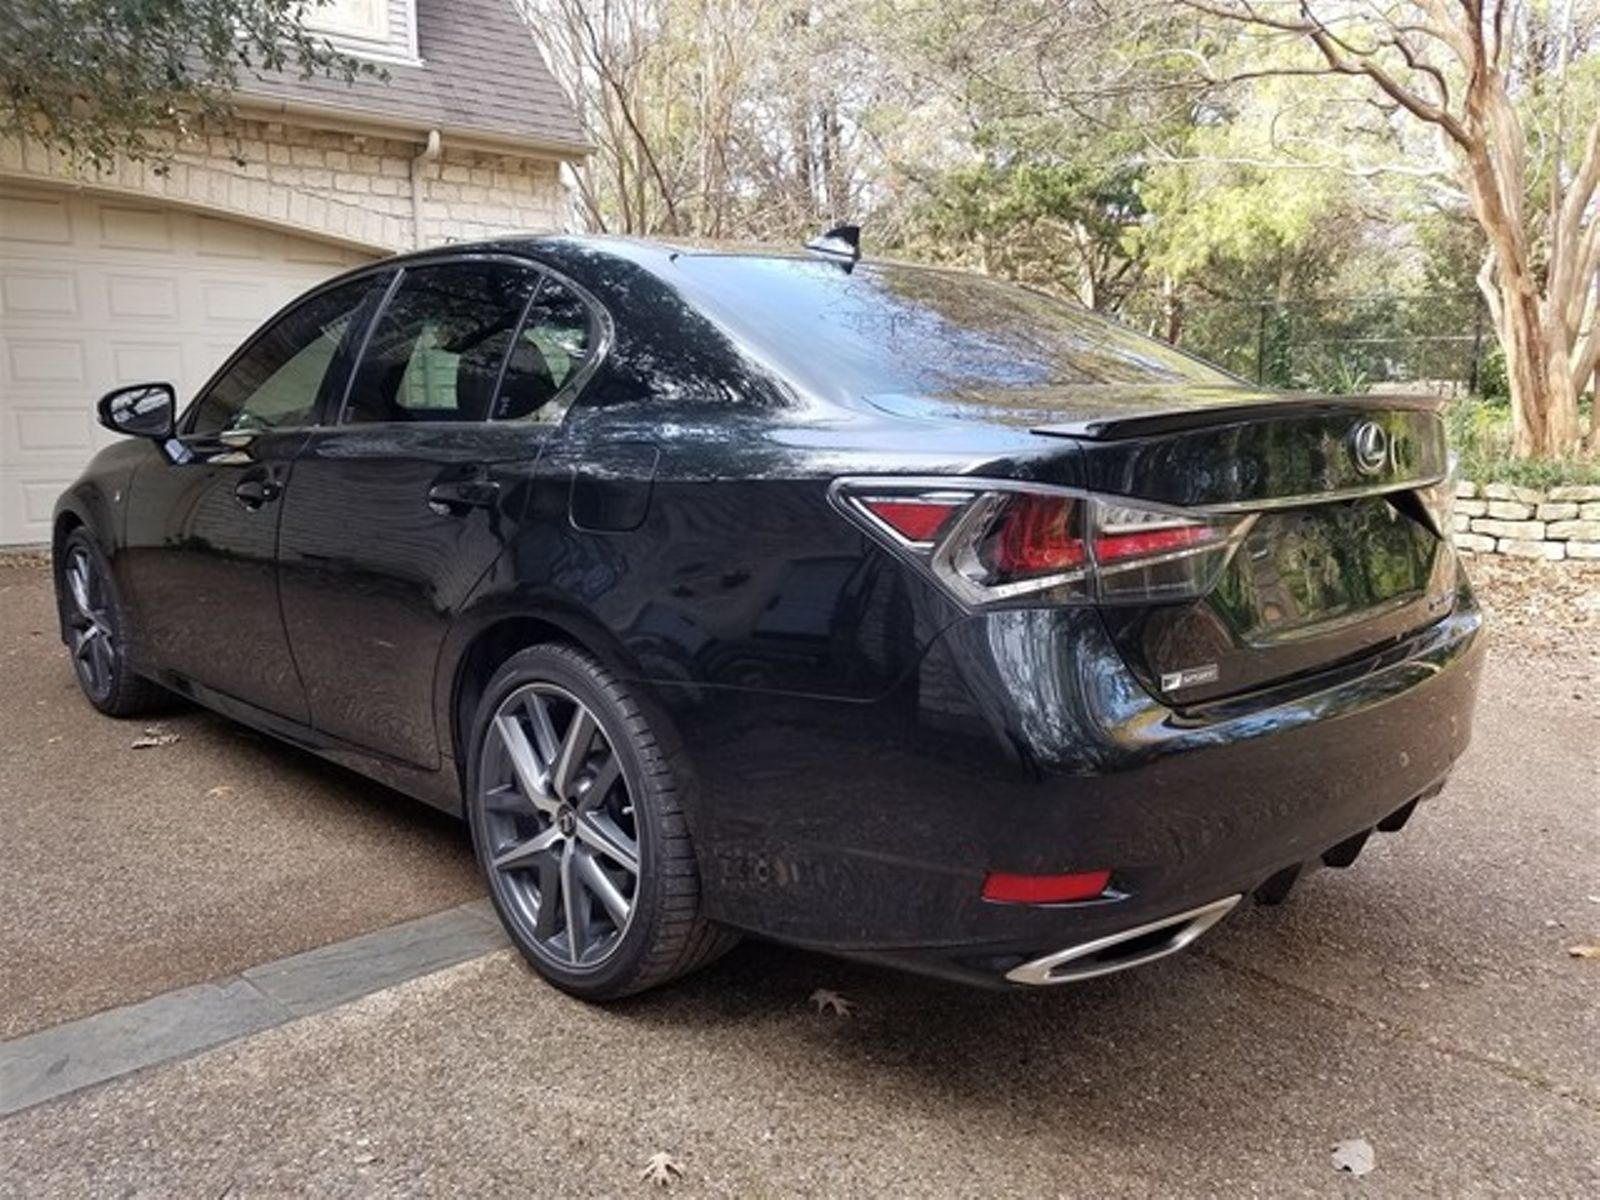 2016 lexus gs 350 f sport lease takeover 649 mo garland texas 75088. Black Bedroom Furniture Sets. Home Design Ideas